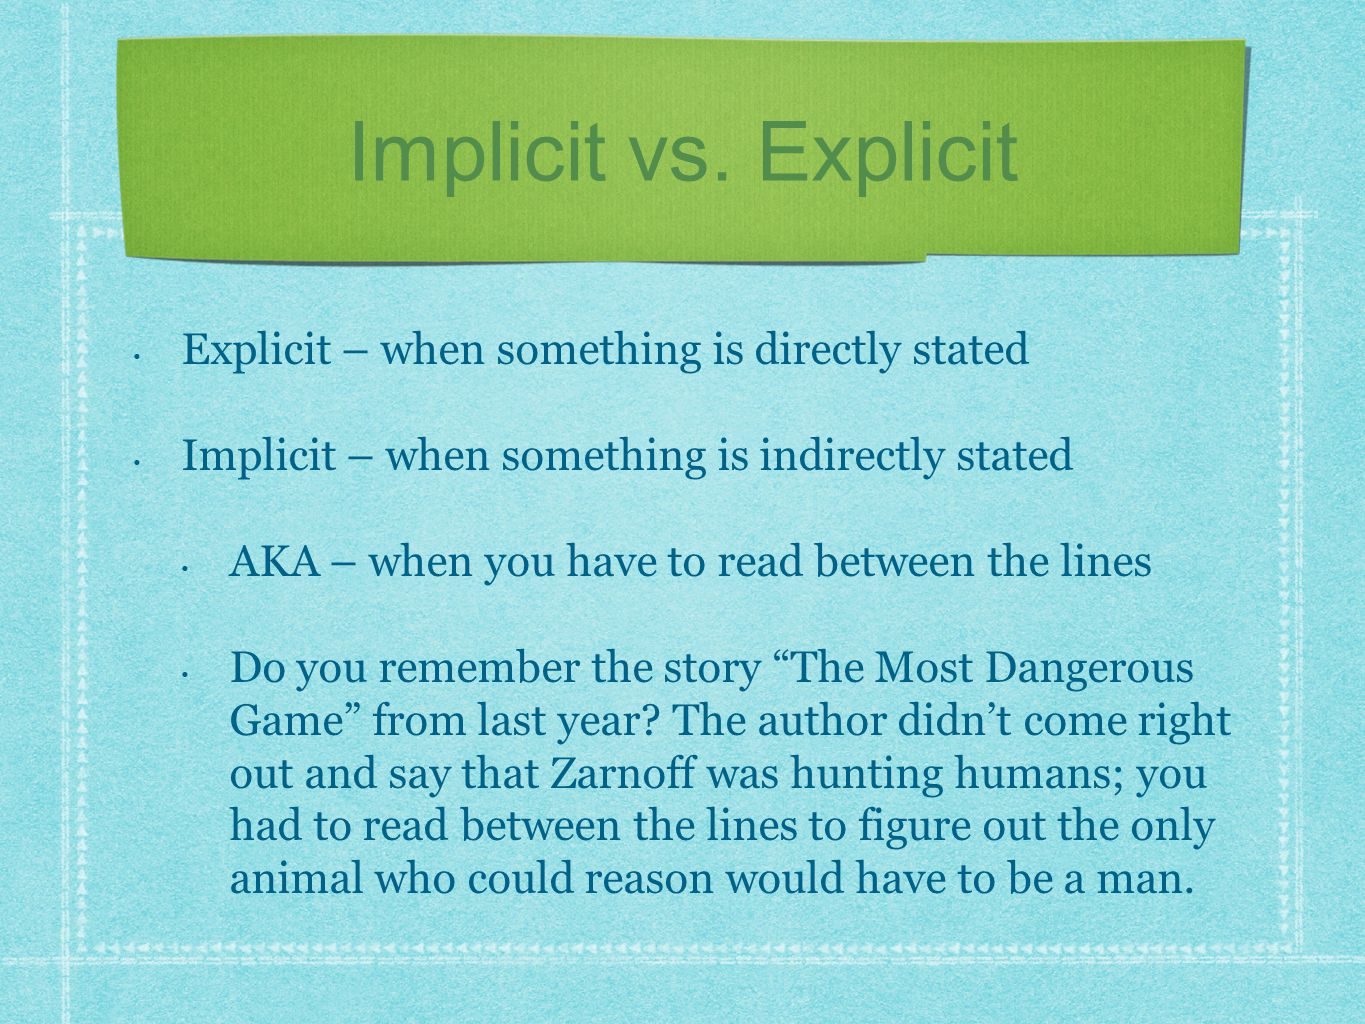 Explicit – when something is directly stated Implicit – when something is indirectly stated AKA – when you have to read between the lines Do you remem